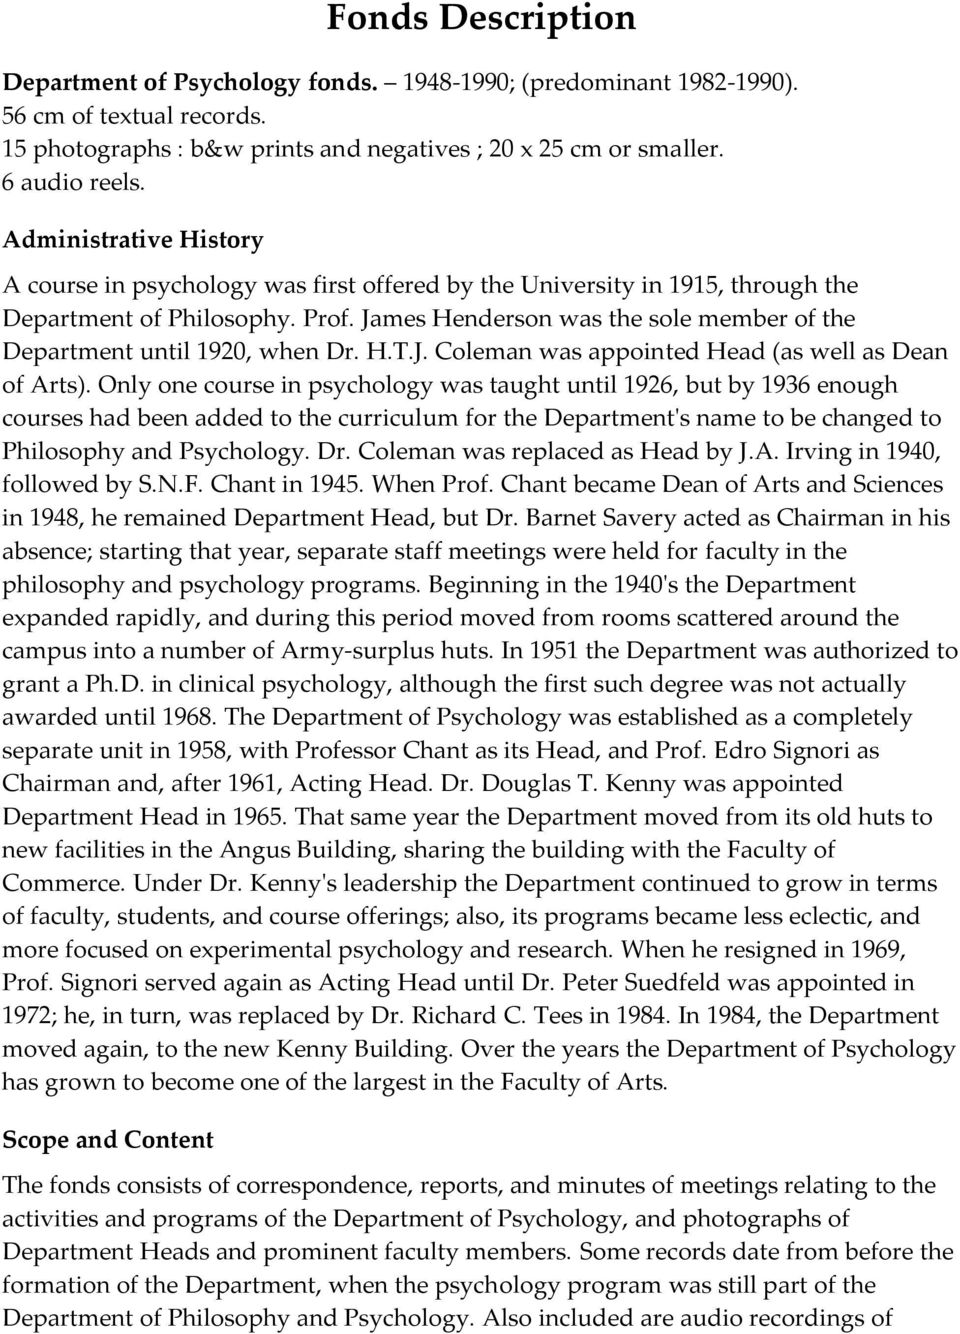 James Henderson was the sole member of the Department until 1920, when Dr. H.T.J. Coleman was appointed Head (as well as Dean of Arts).